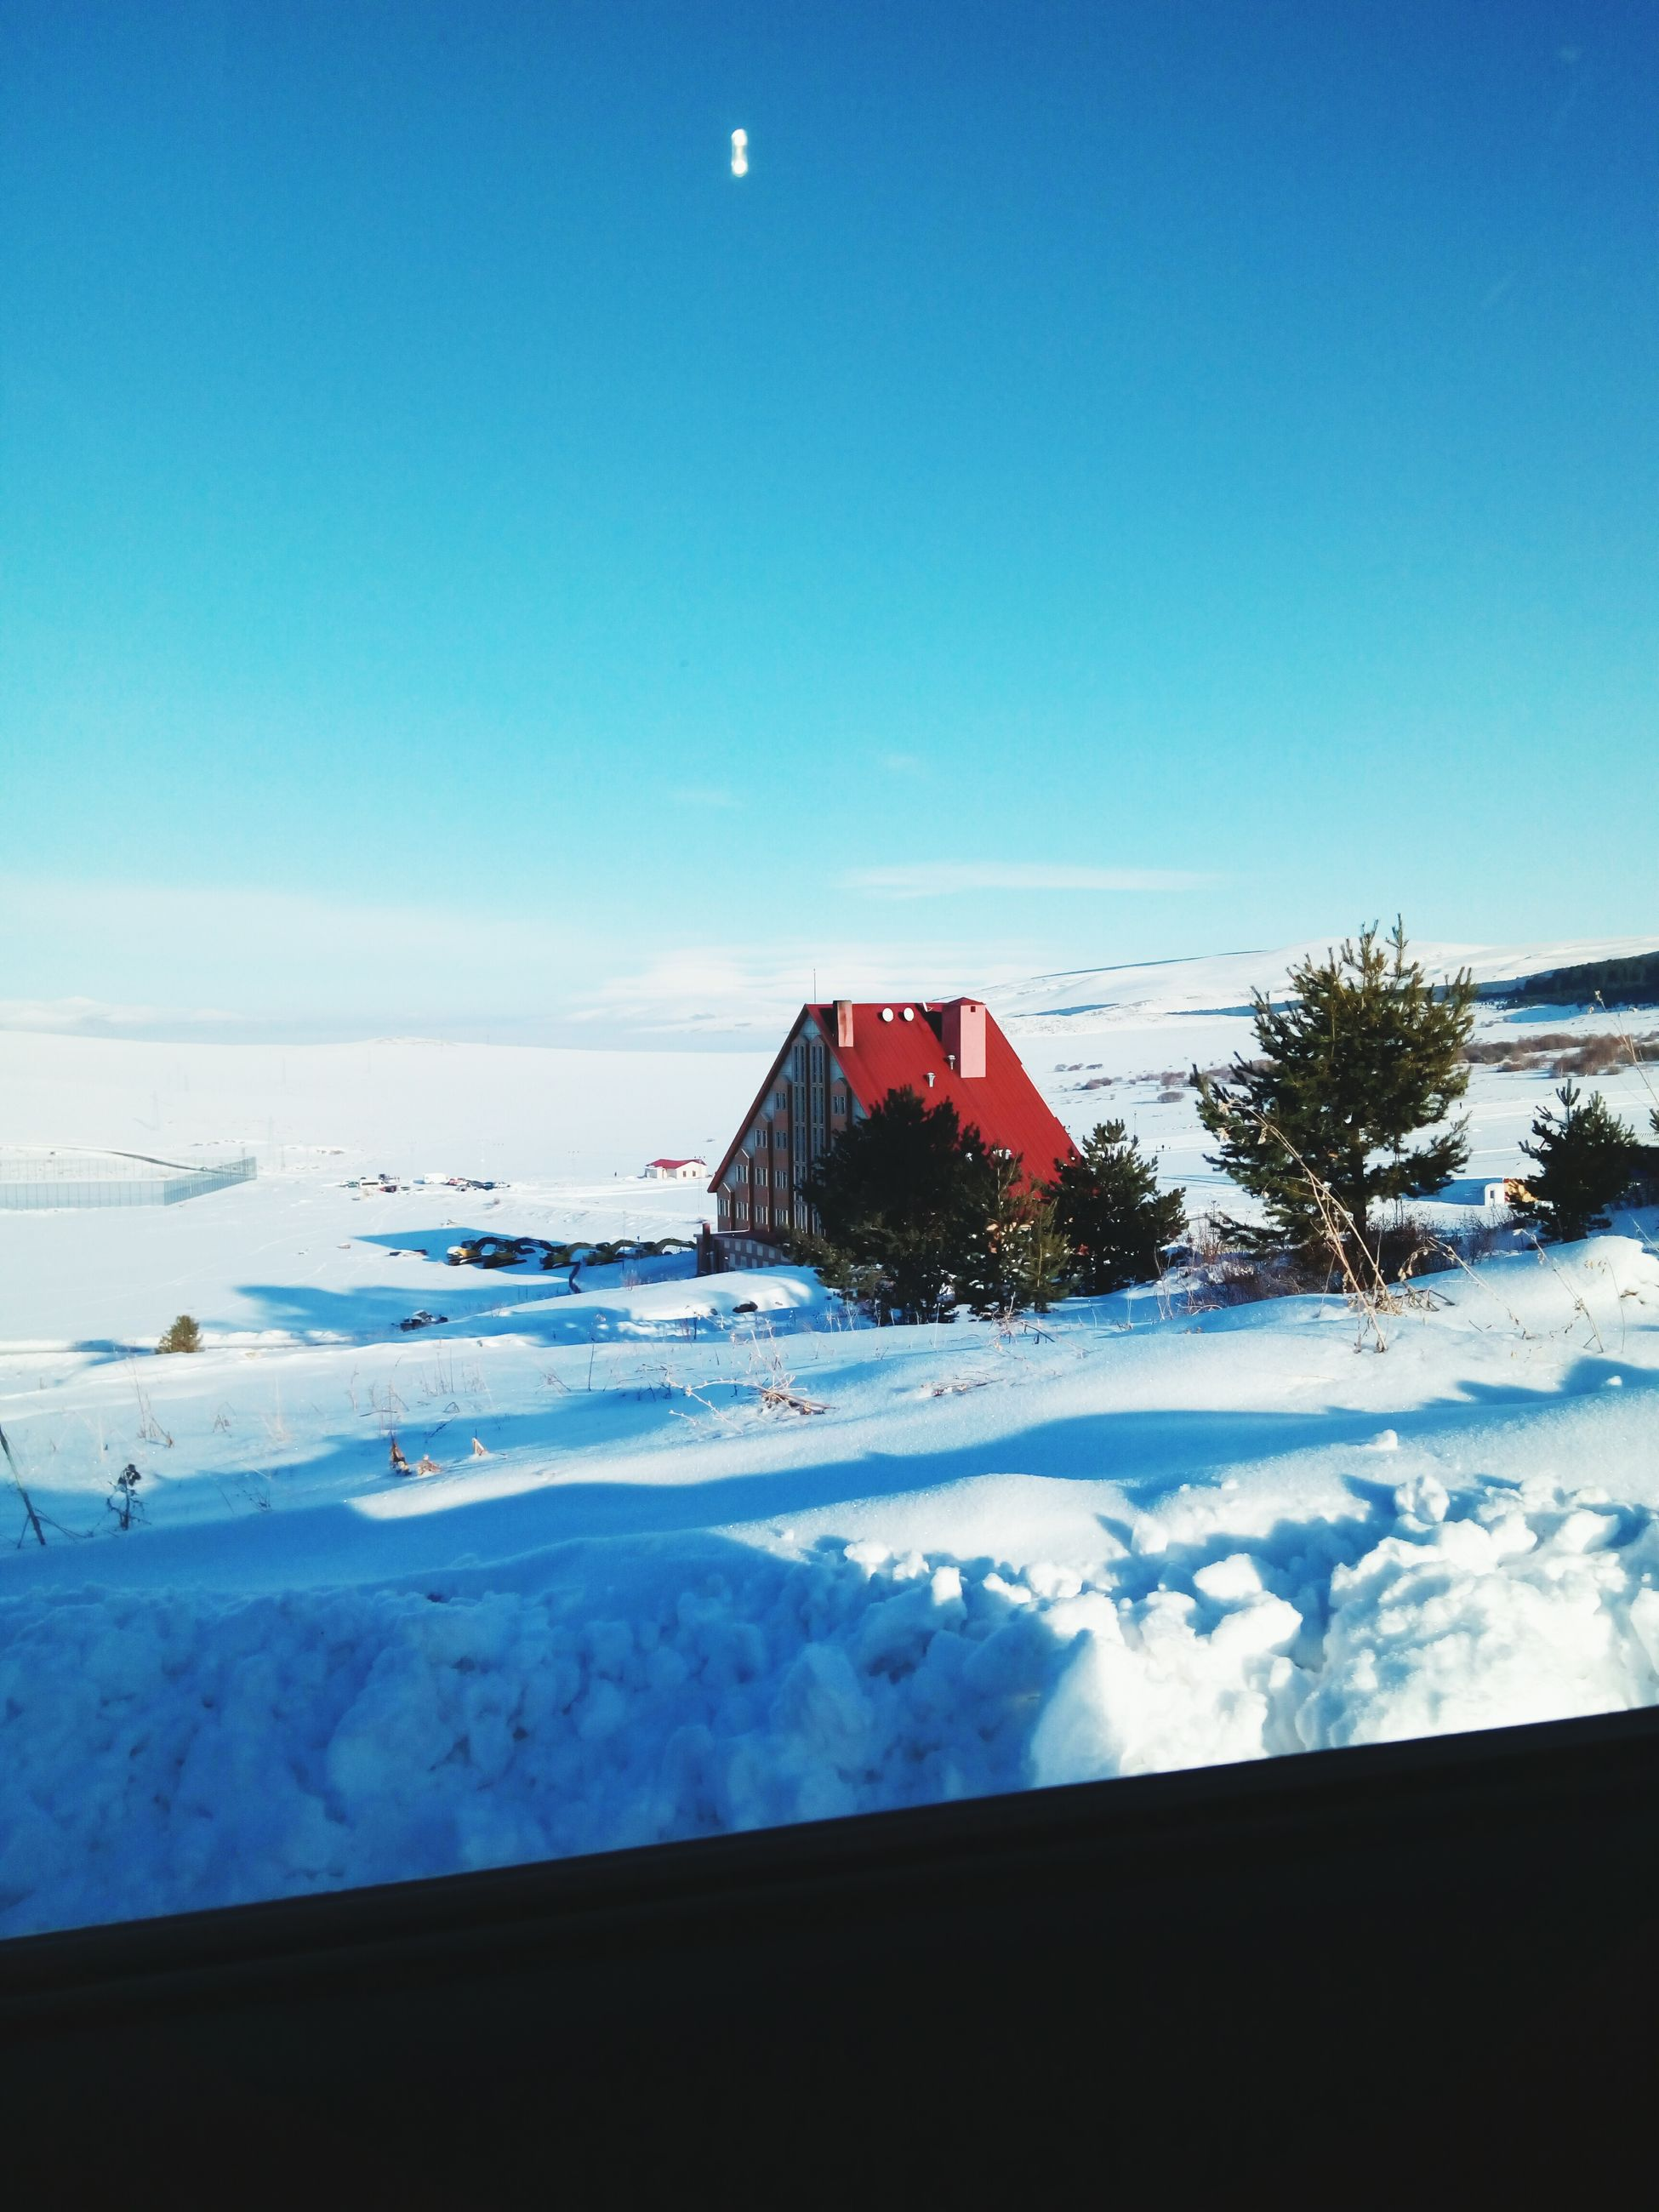 snow, cold temperature, no people, blue, winter, sky, nature, scenics, tranquility, clear sky, outdoors, beauty in nature, building exterior, built structure, day, sea, architecture